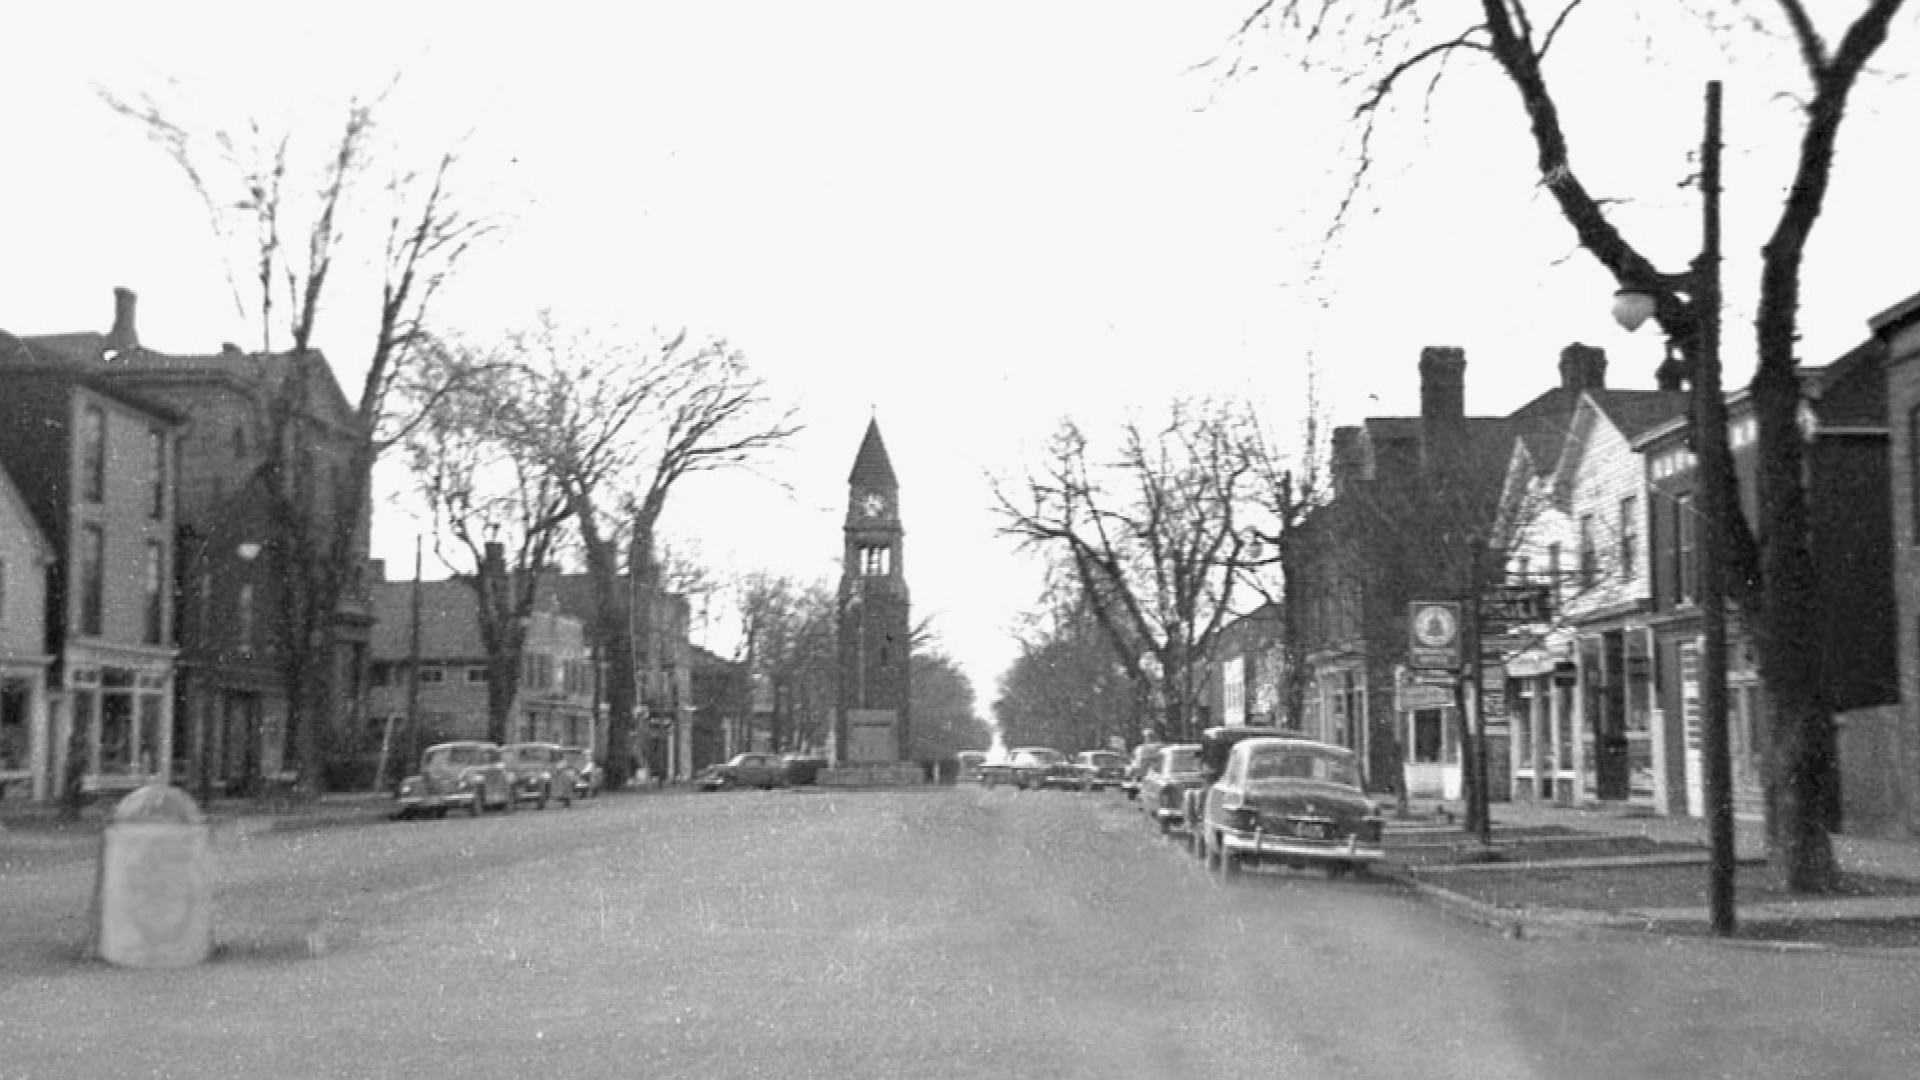 Queen Street in Niagara-on-the Lake in the early 1960's.